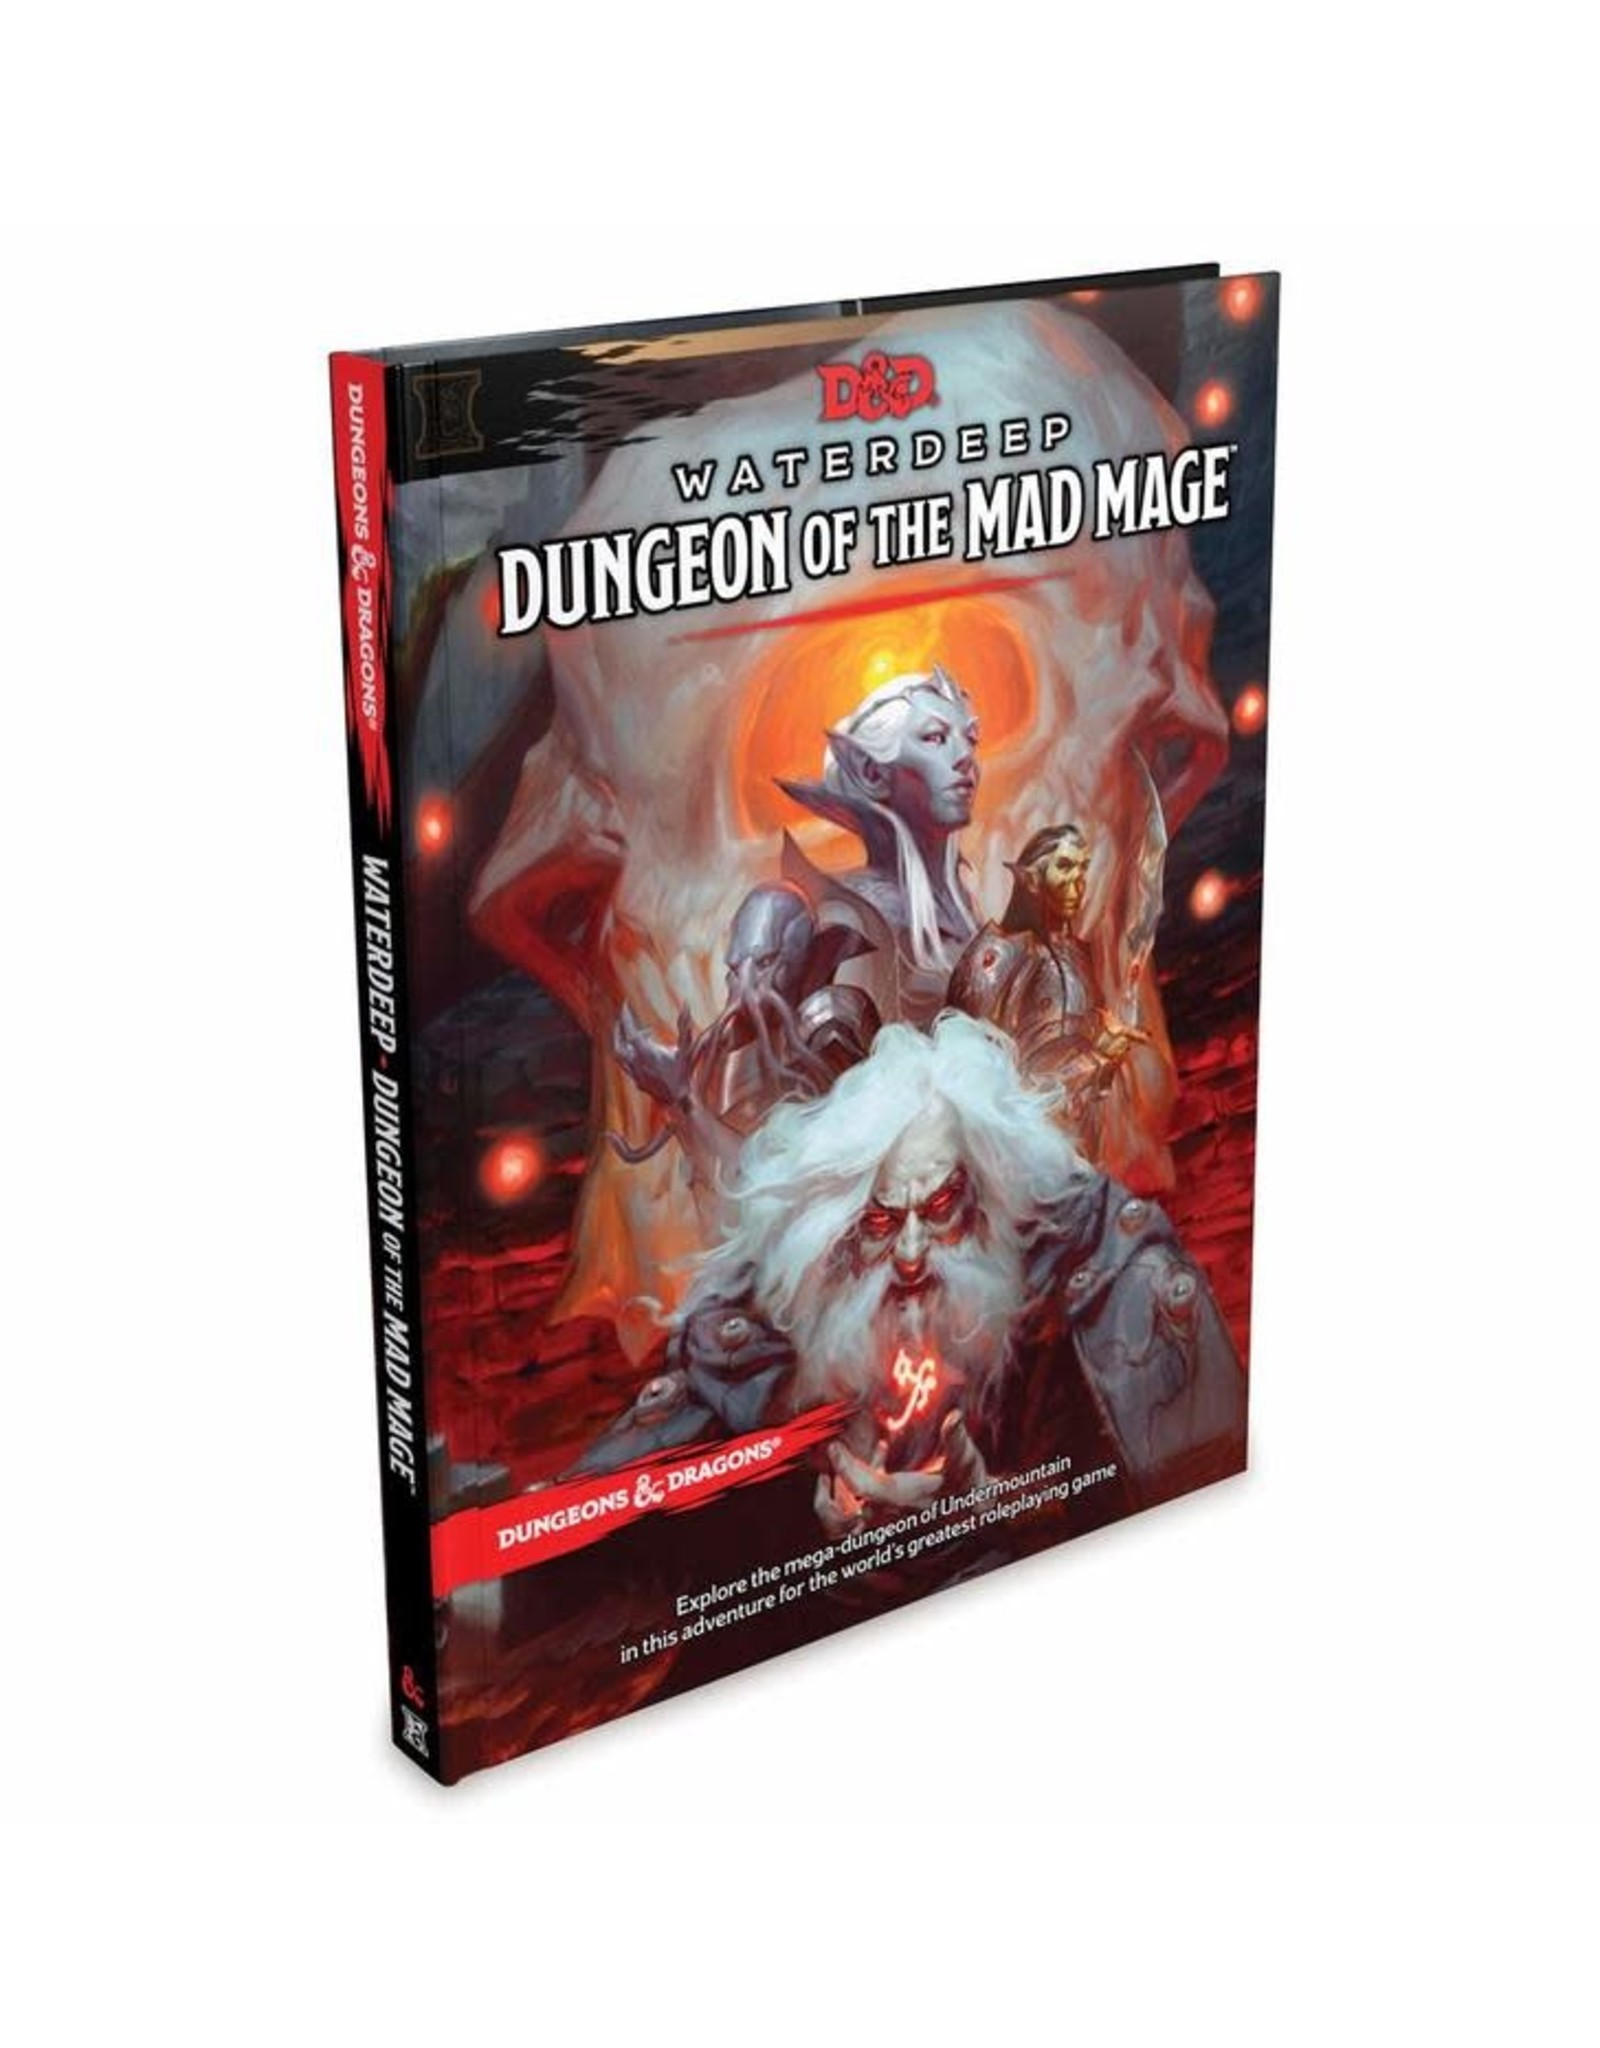 Dungeons and Dragons: Waterdeep- Dungeon of the Mad Mage